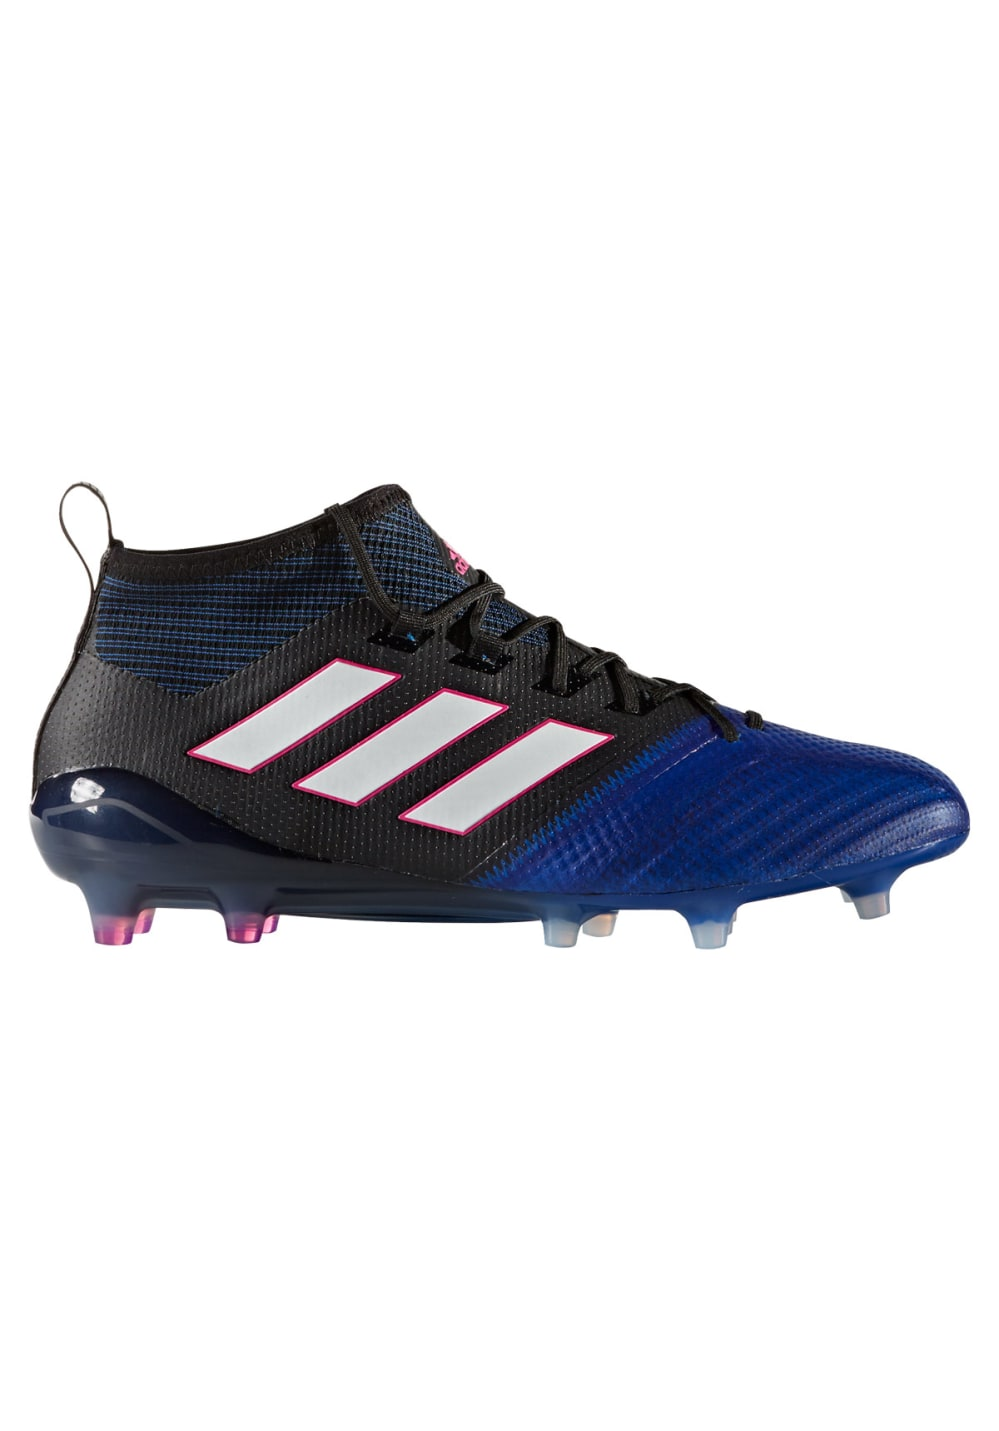 online store a0b1b 08eb9 Next. -60%. adidas. ACE 17.1 ...